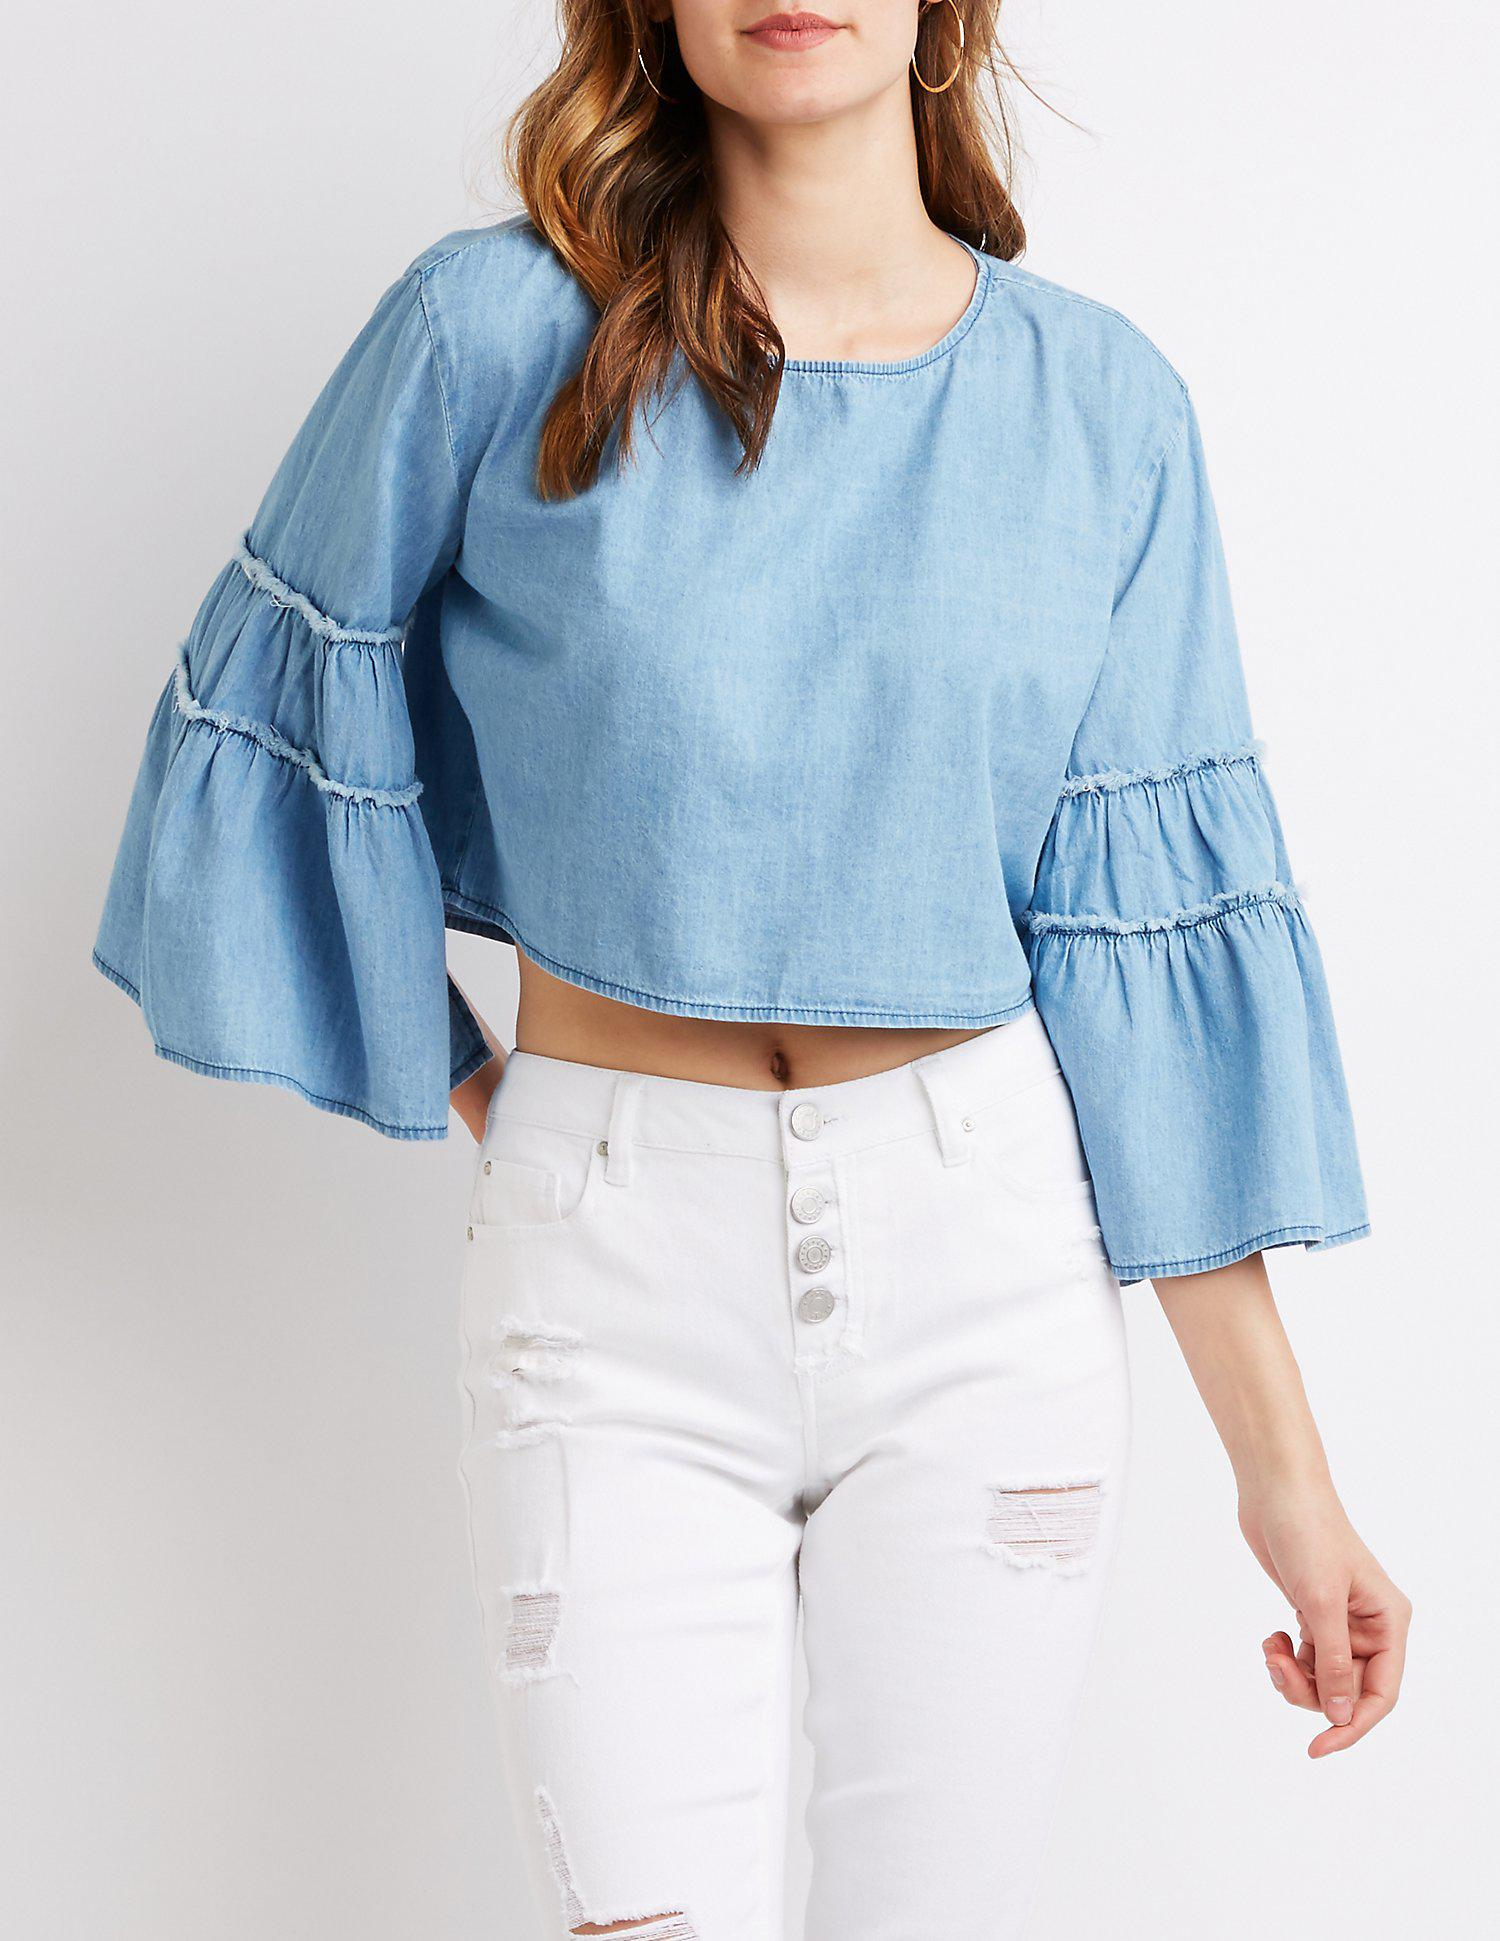 8519f4c062e41a Lyst - Charlotte Russe Chambray Bell Sleeve Top in Blue